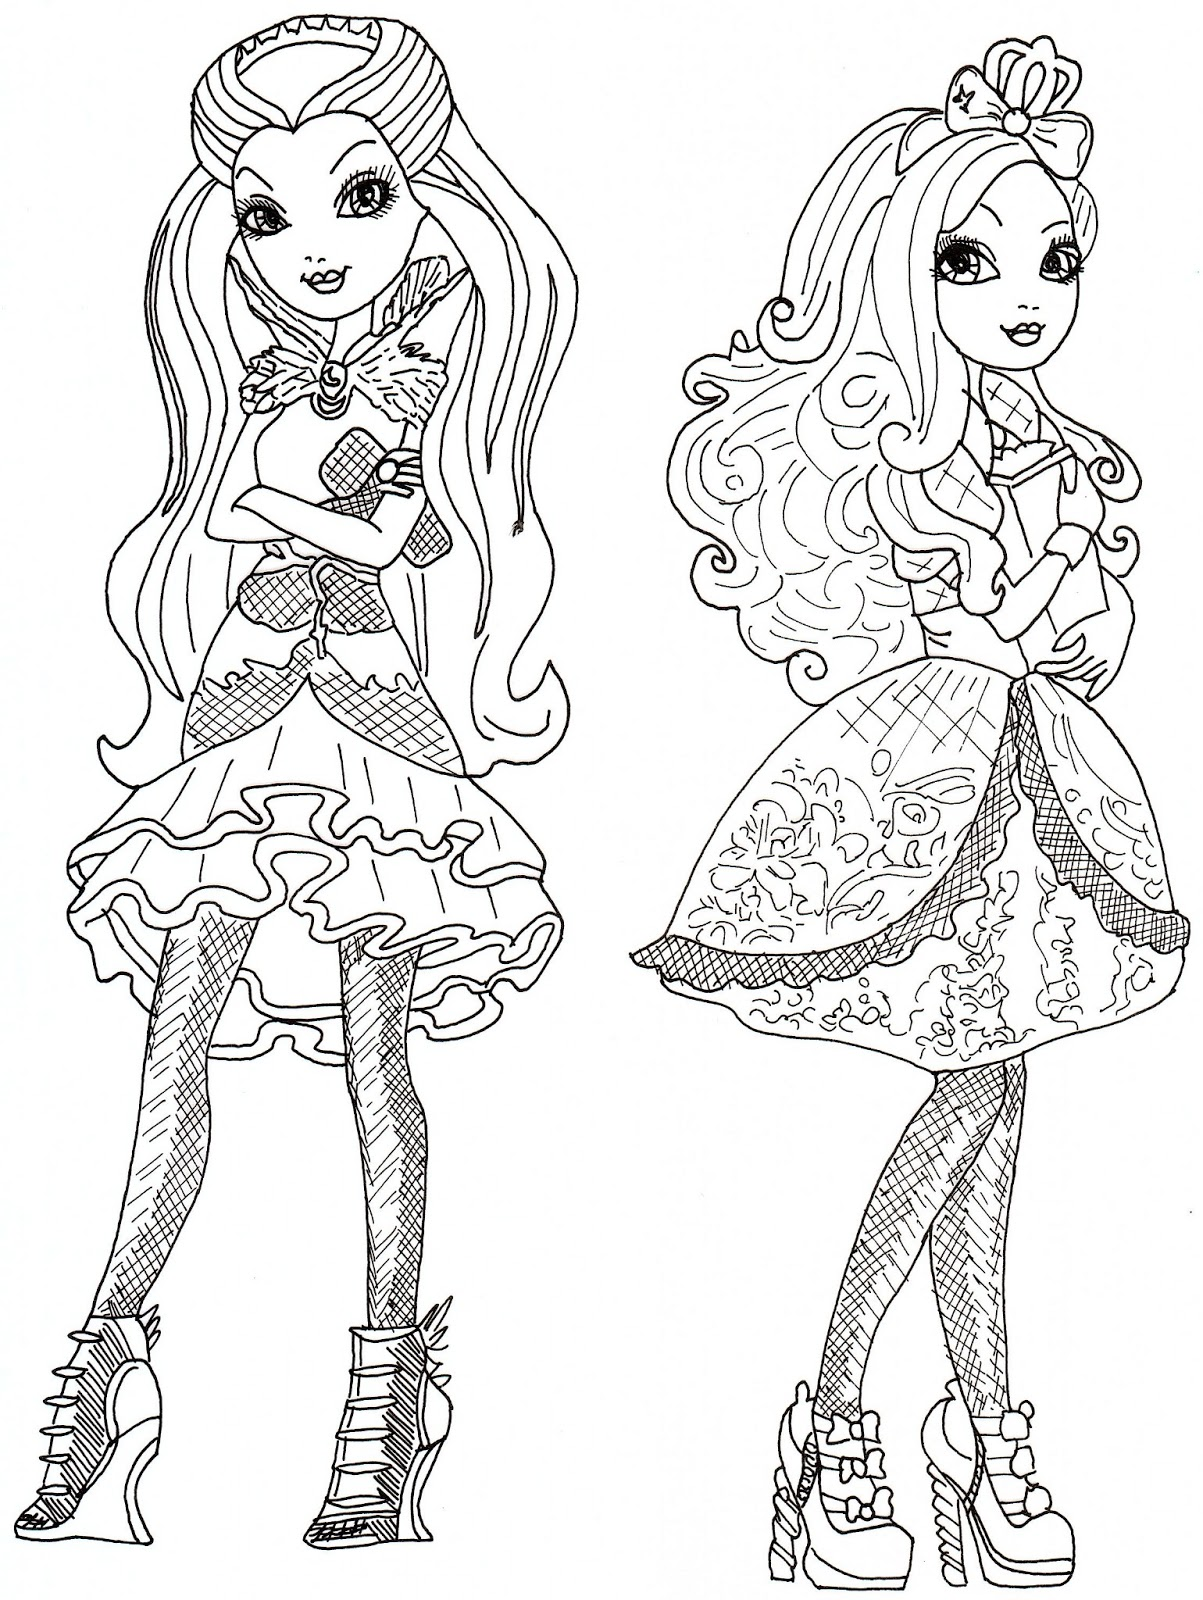 Free Ever After High Coloring Pages: February 2014